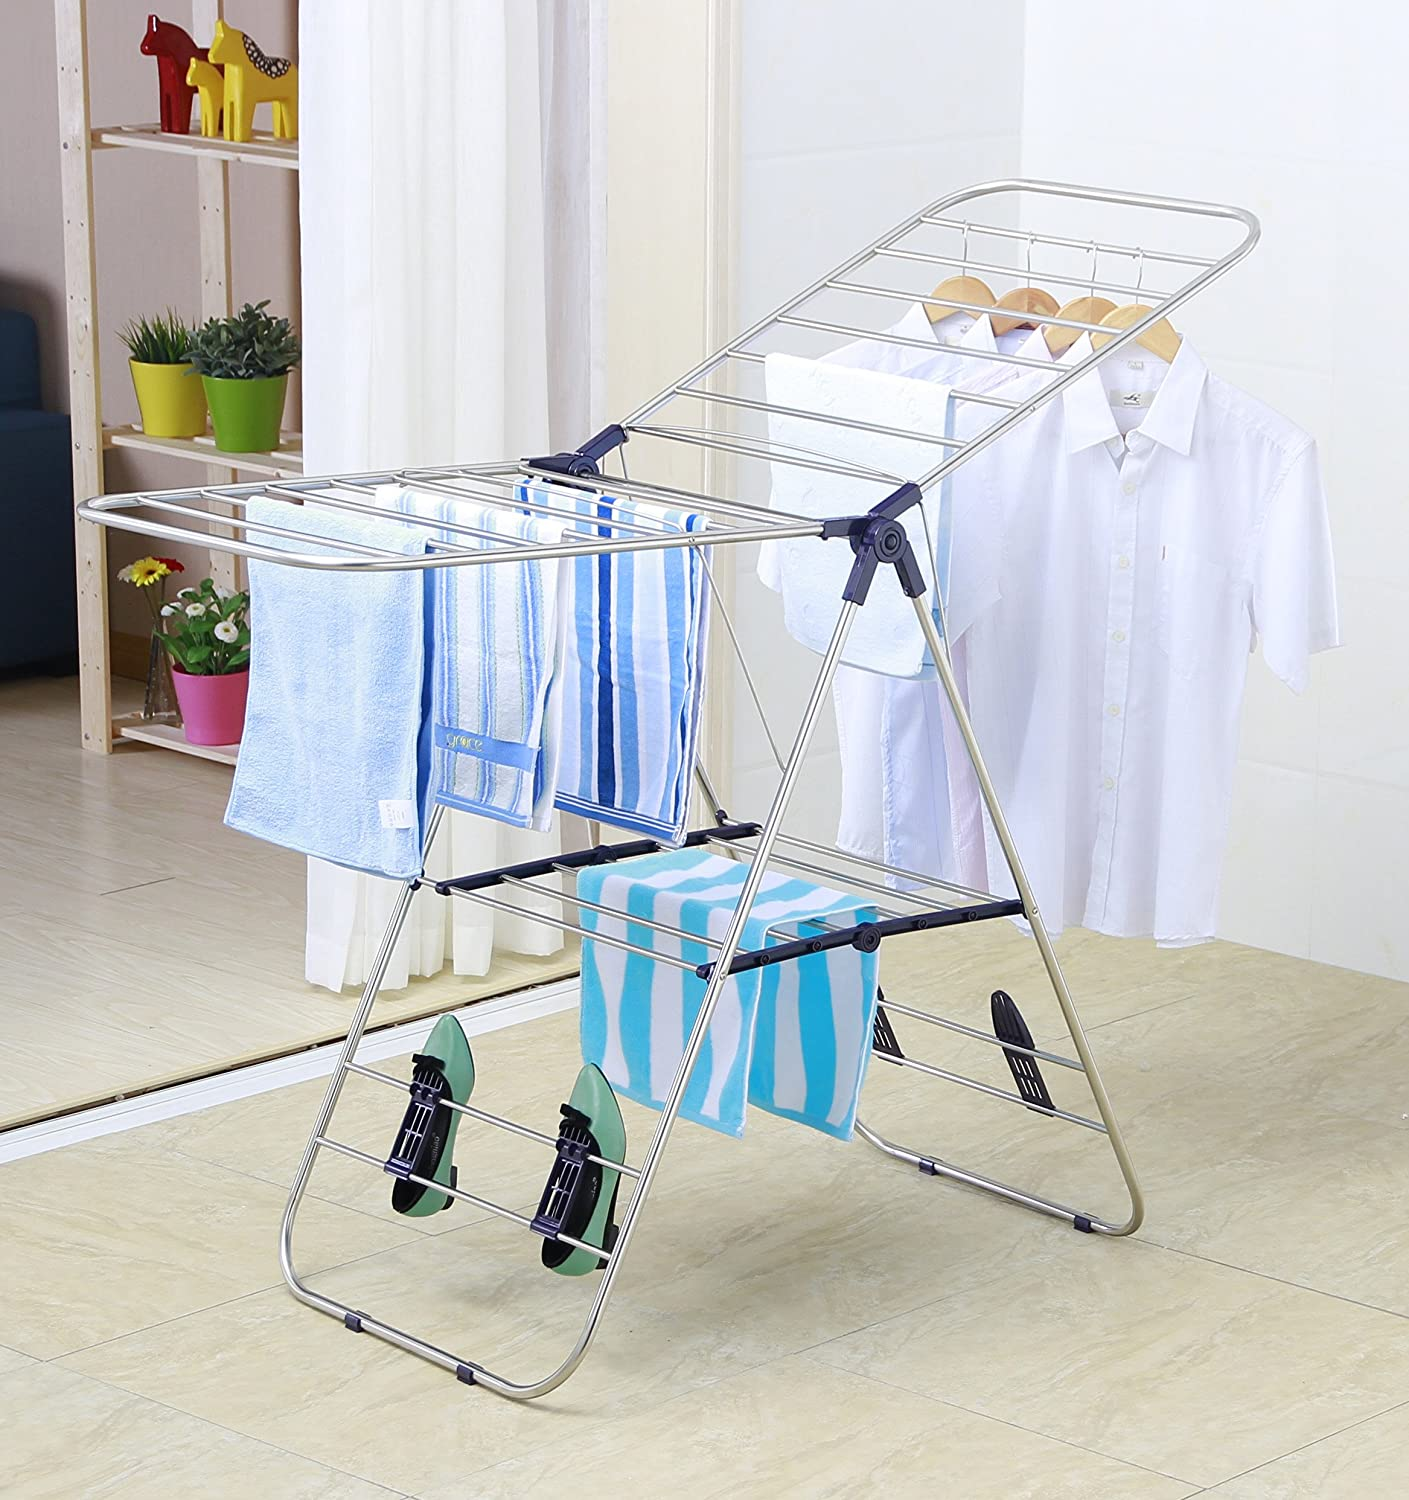 Top 20 best clothes drying racks reviews 2016 2017 on for Drying cabinets for clothes